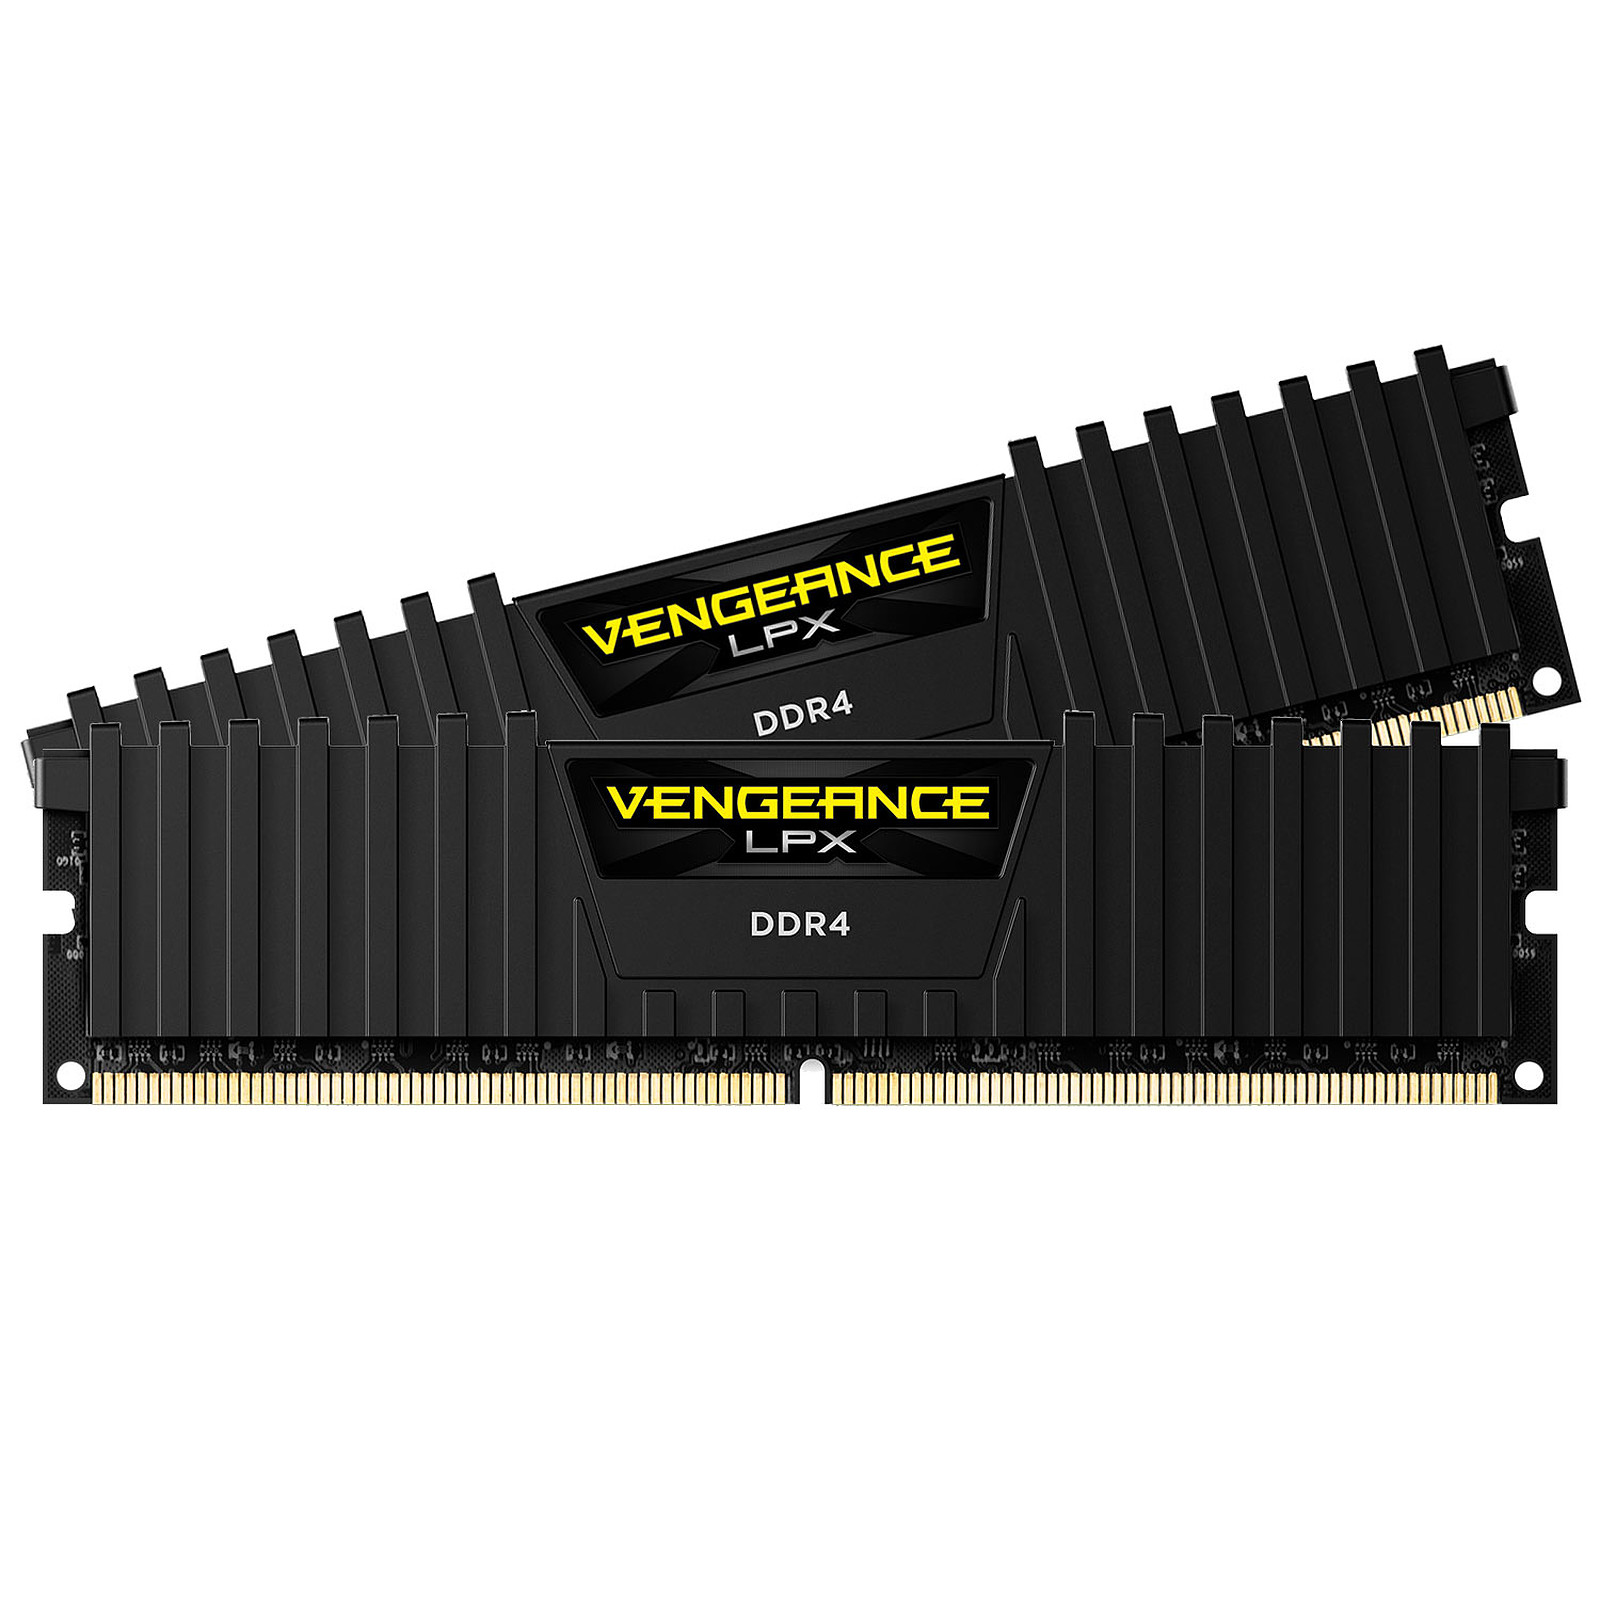 Mémoire Corsair Vengeance LPX Series Low Profile kit 2x 8 Go DDR4 3200 MHz CL16, informatique Reunion 974, Futur Réunion informatique